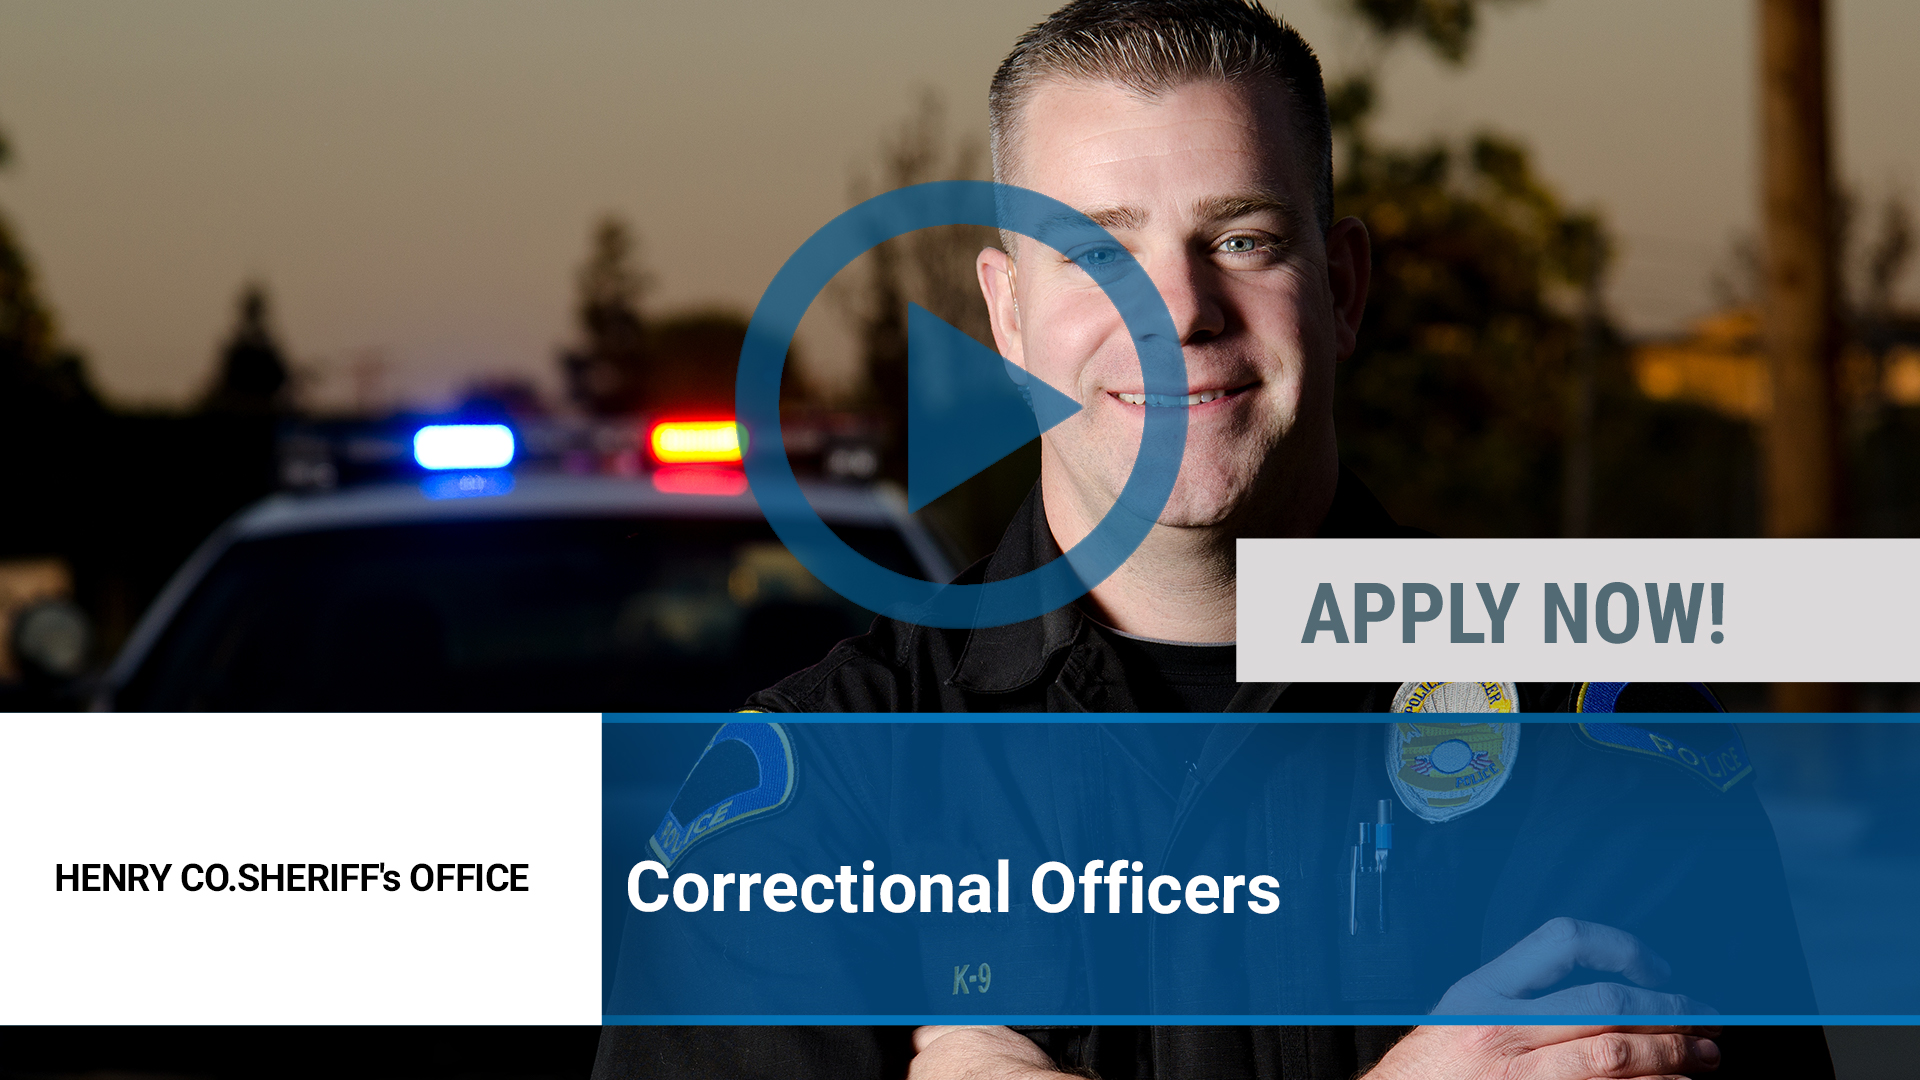 Watch our careers video for available job opening Correctional Officers in Cambridge, IL